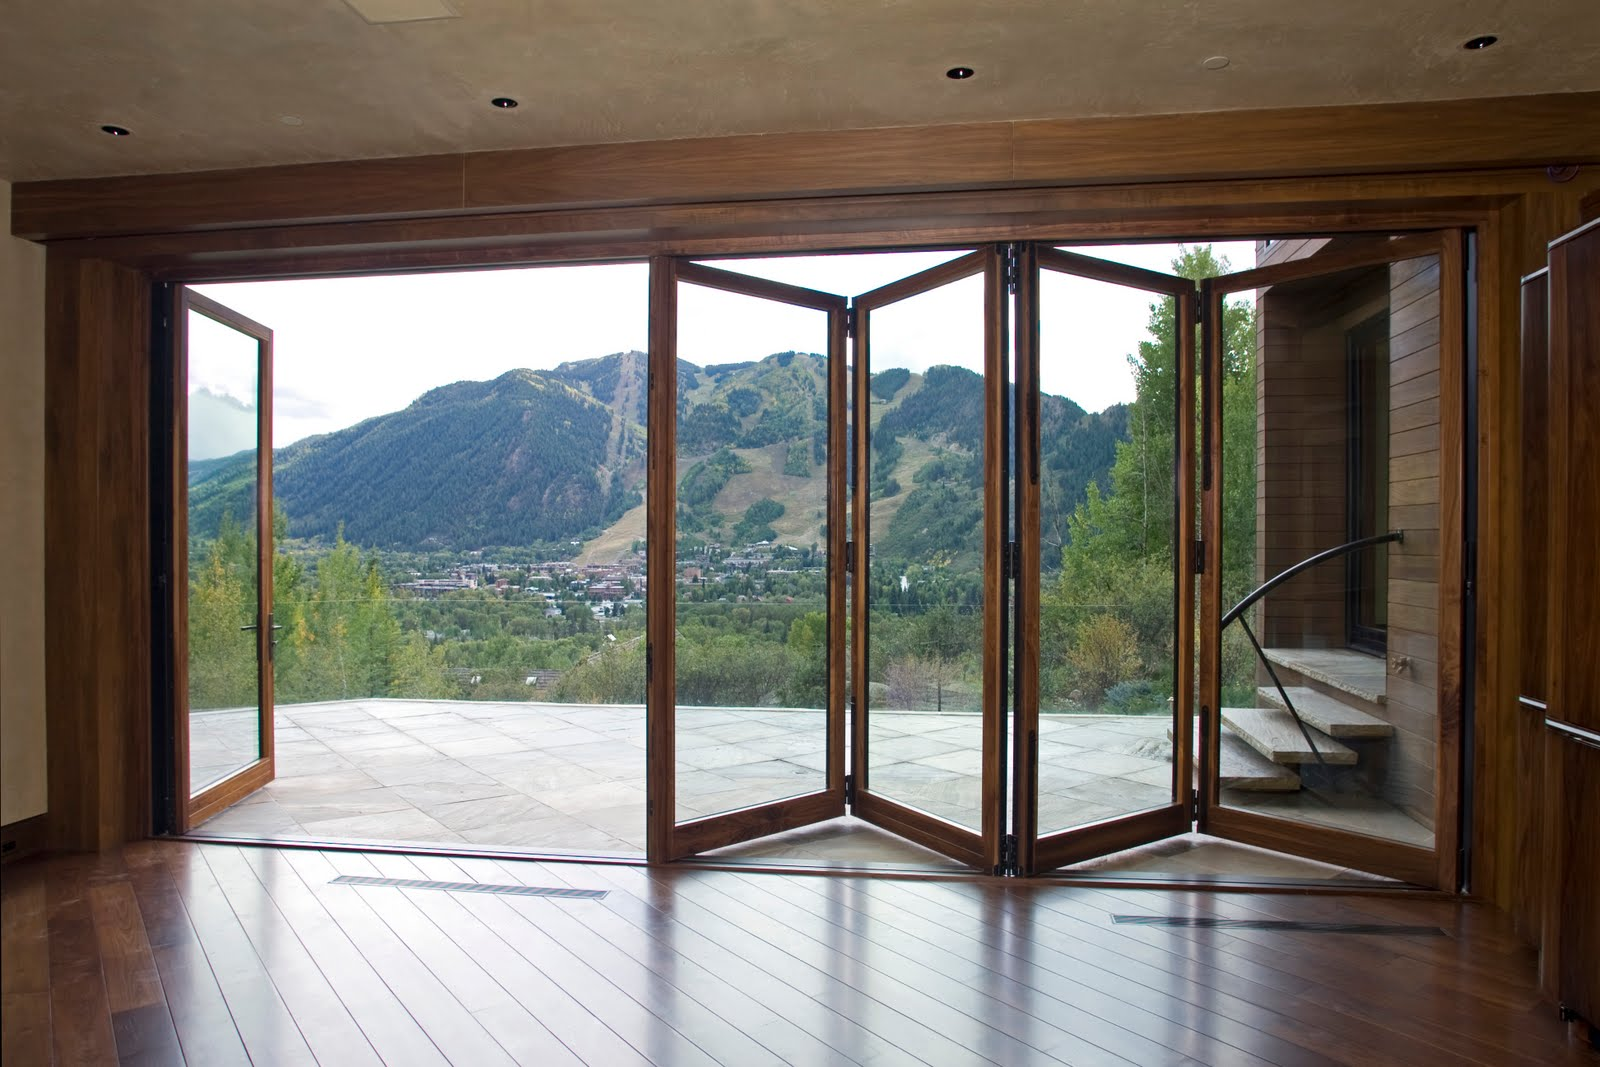 Grabill windows and doors product highlight folding doors for Outside door with window that opens